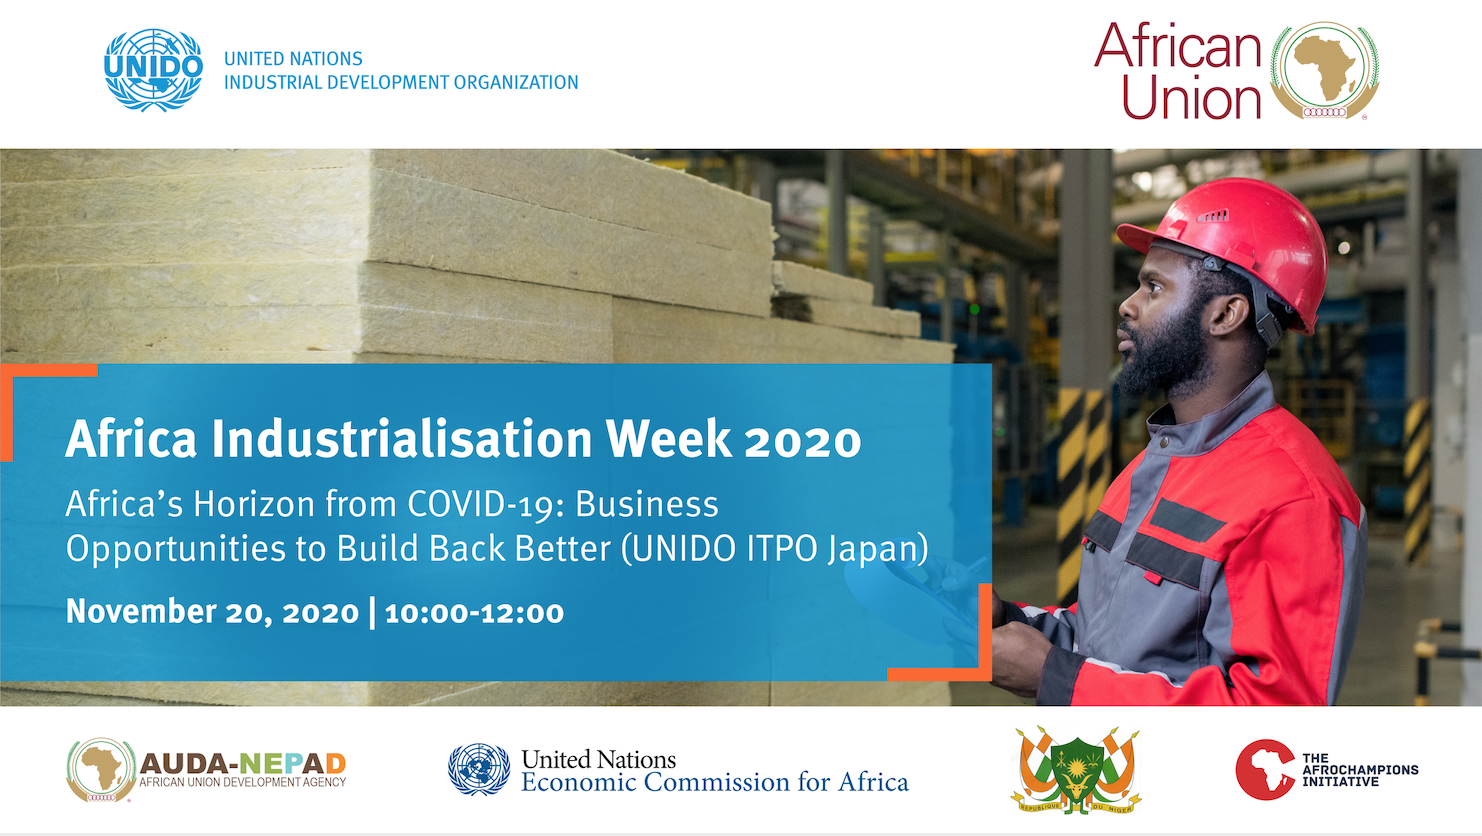 AIW2020- Africa's Horizon from COVID-19: Business Opportunities to Build Back Better (UNIDO ITPO Japan)